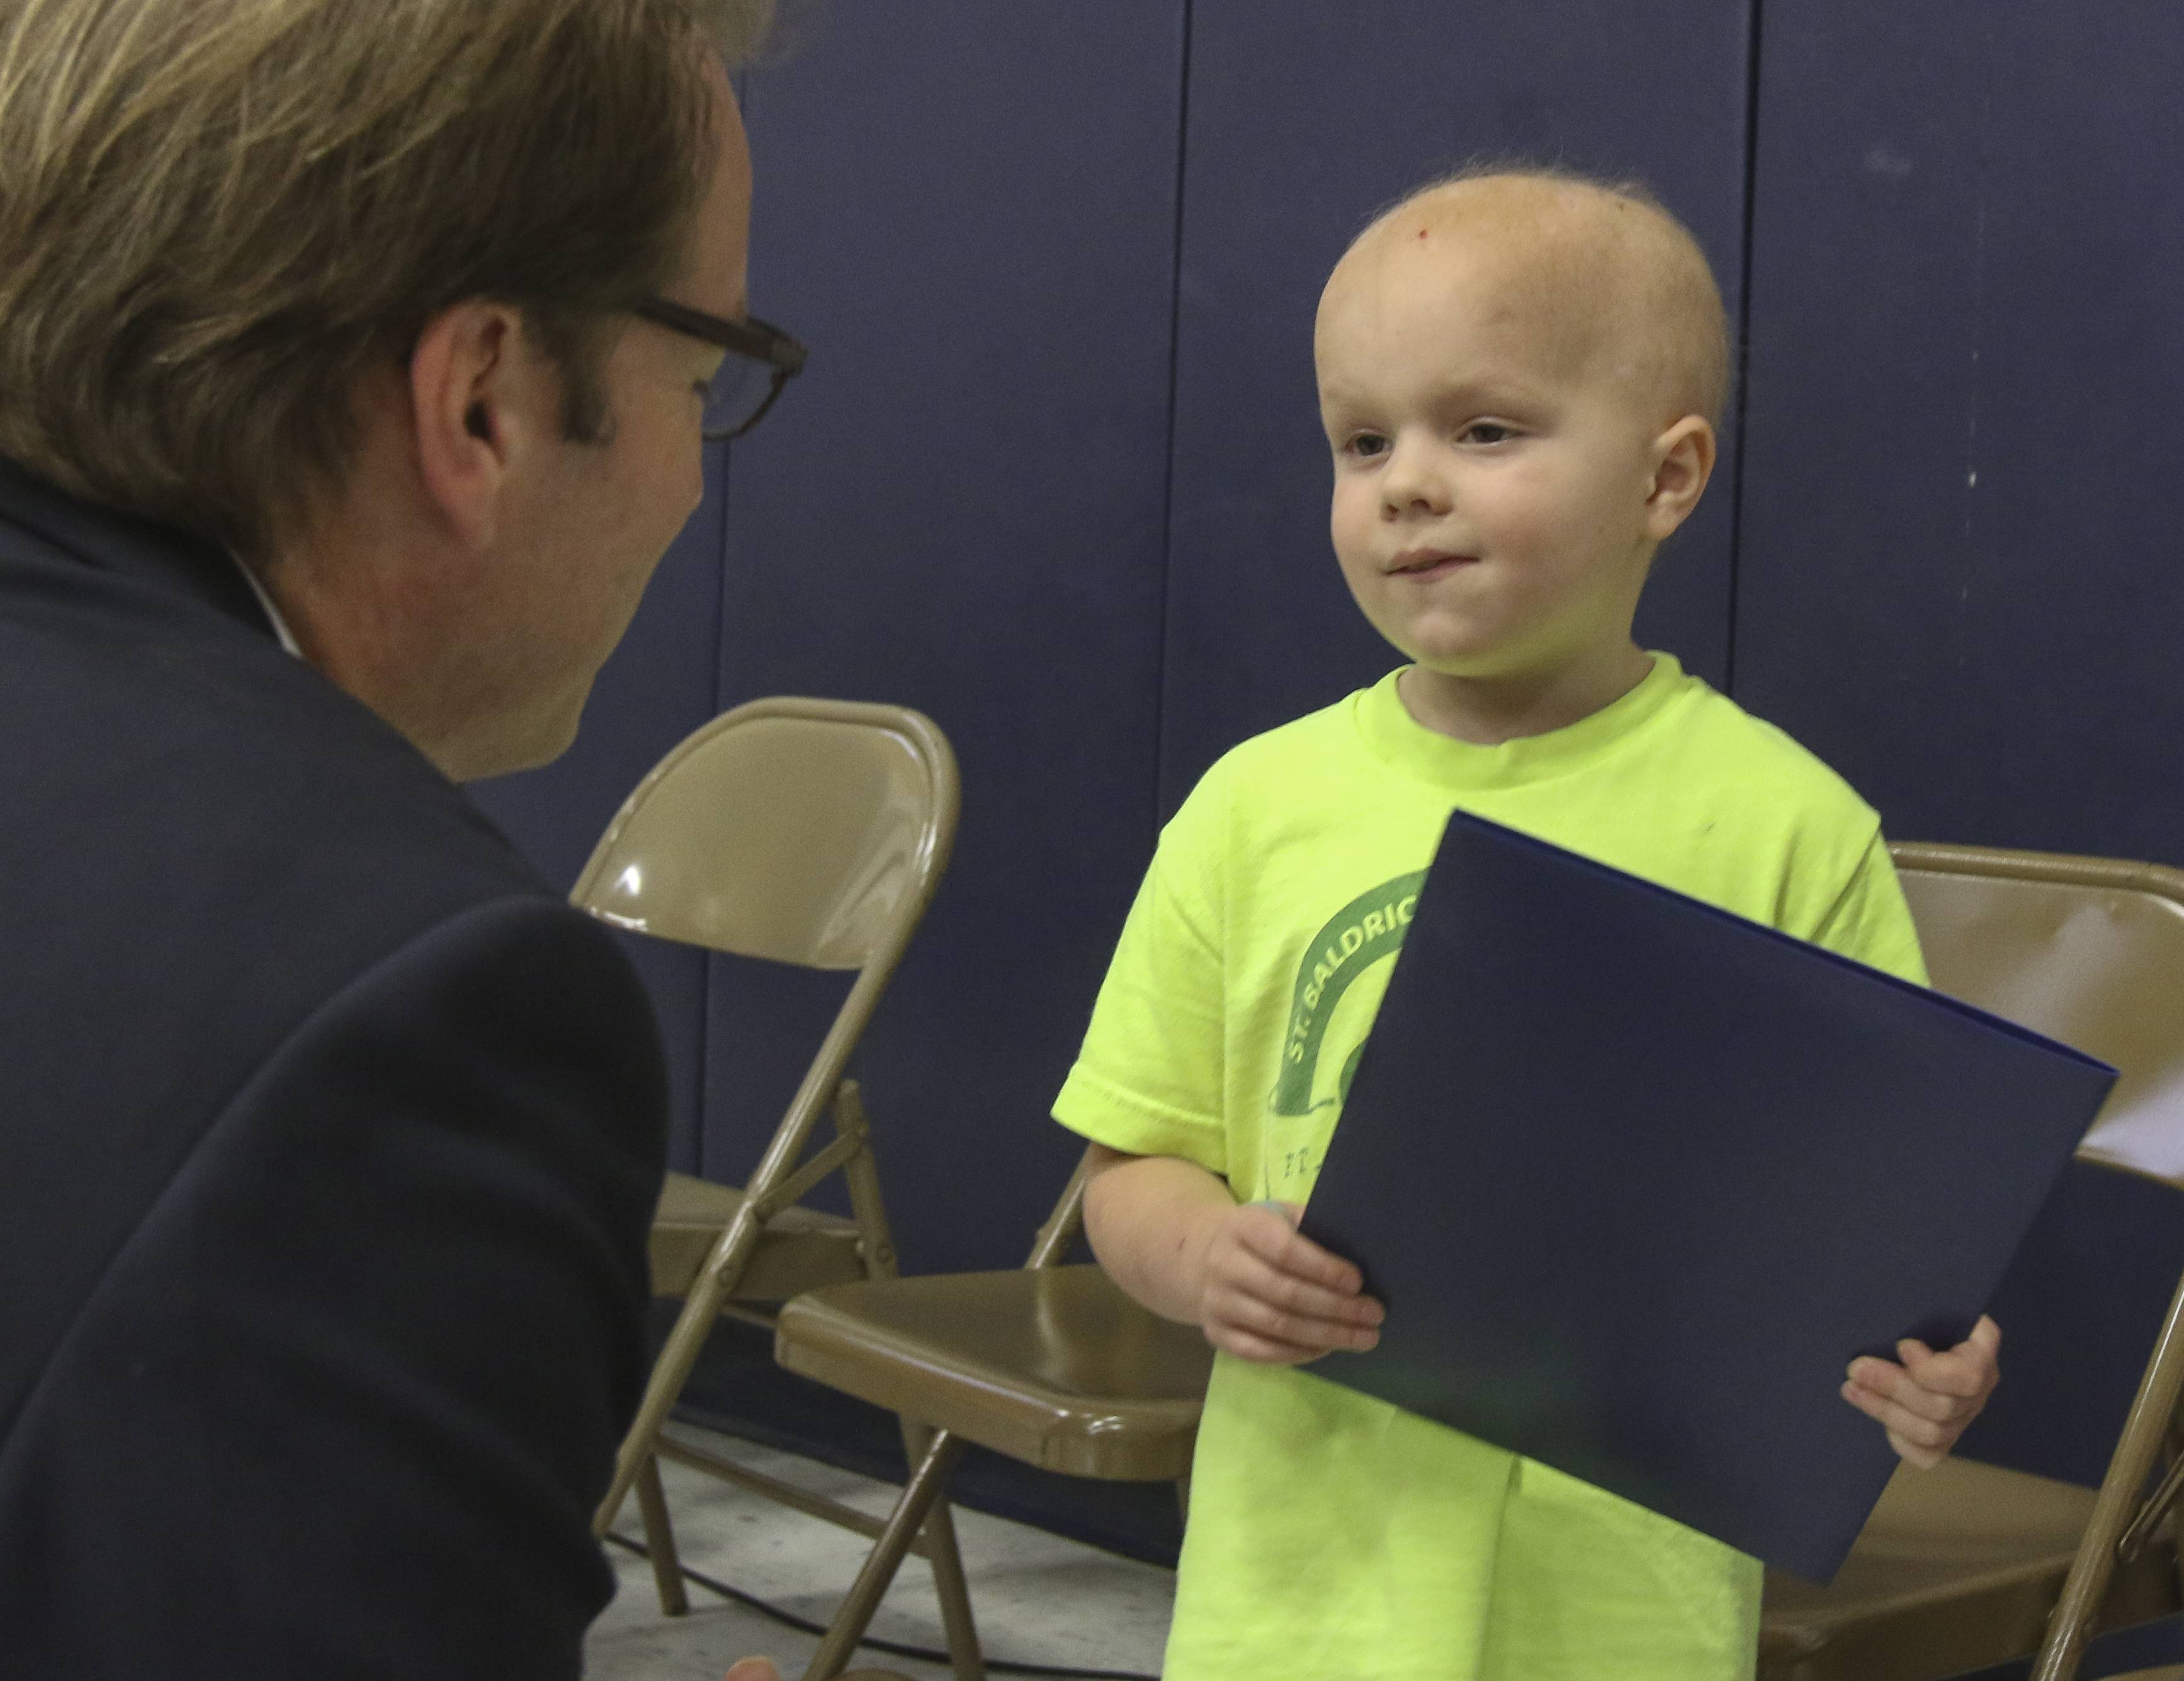 U.S. Rep. Peter Roskam praises 5-year-old cancer survivor Chase Ewoldt at Emerson Elementary School in Wheaton.